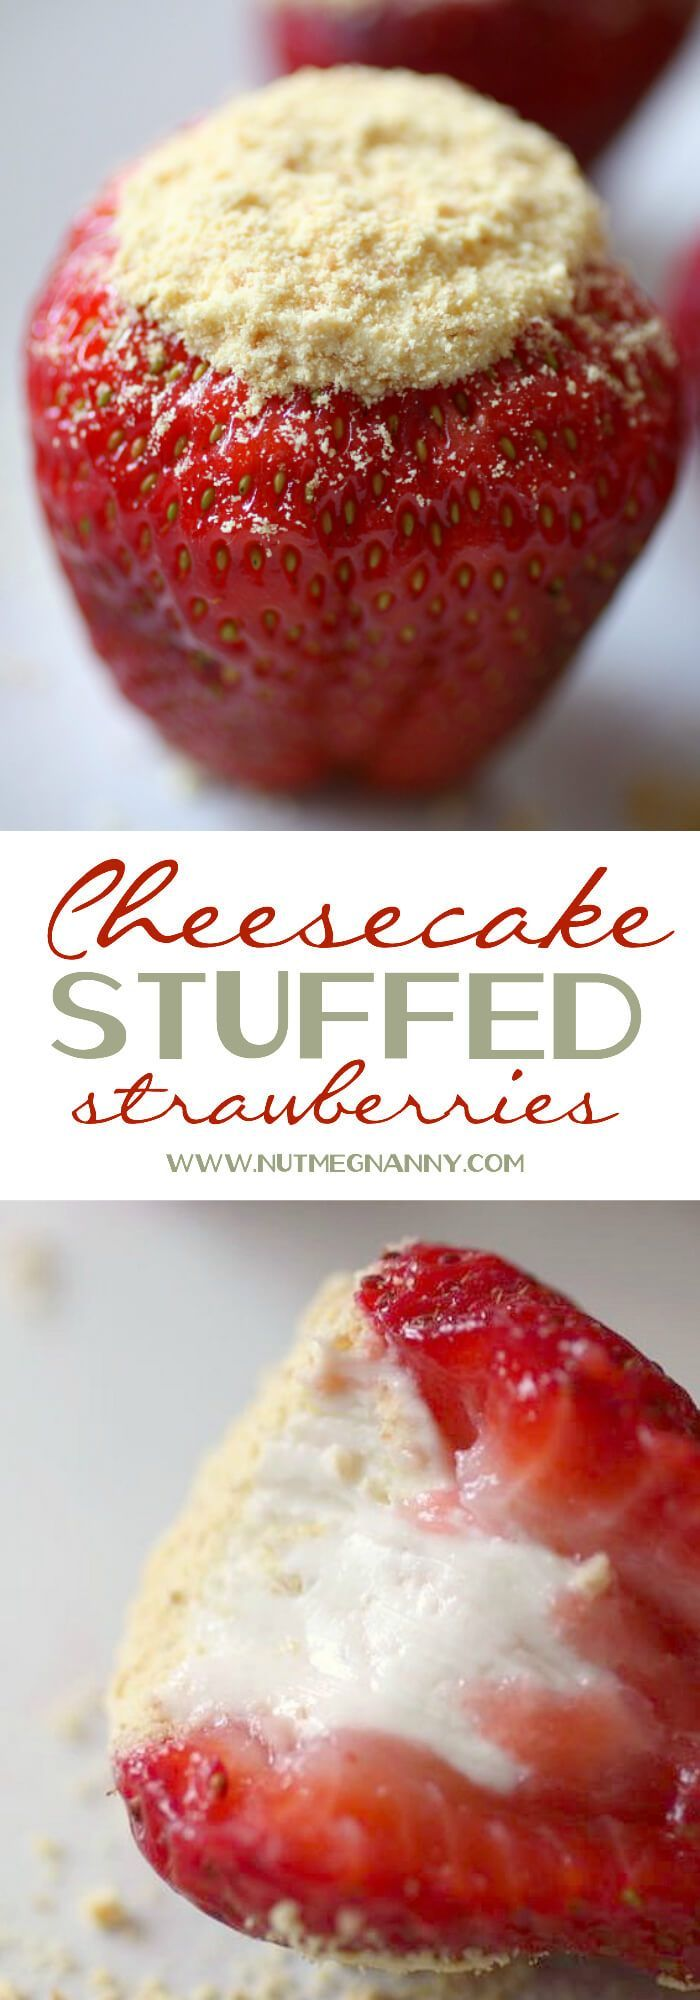 These Cheesecake Stuffed Strawberries are the perfect Valentine's Day dessert. Filled with creamy cheesecake filling and topped with a sprinkling of graham cracker crumbs. Cheesecake Stuffed Strawberries are the perfect Valentine's Day dessert. Filled with creamy cheesecake filling and topped with a sprinkling of graham cracker crumbs.